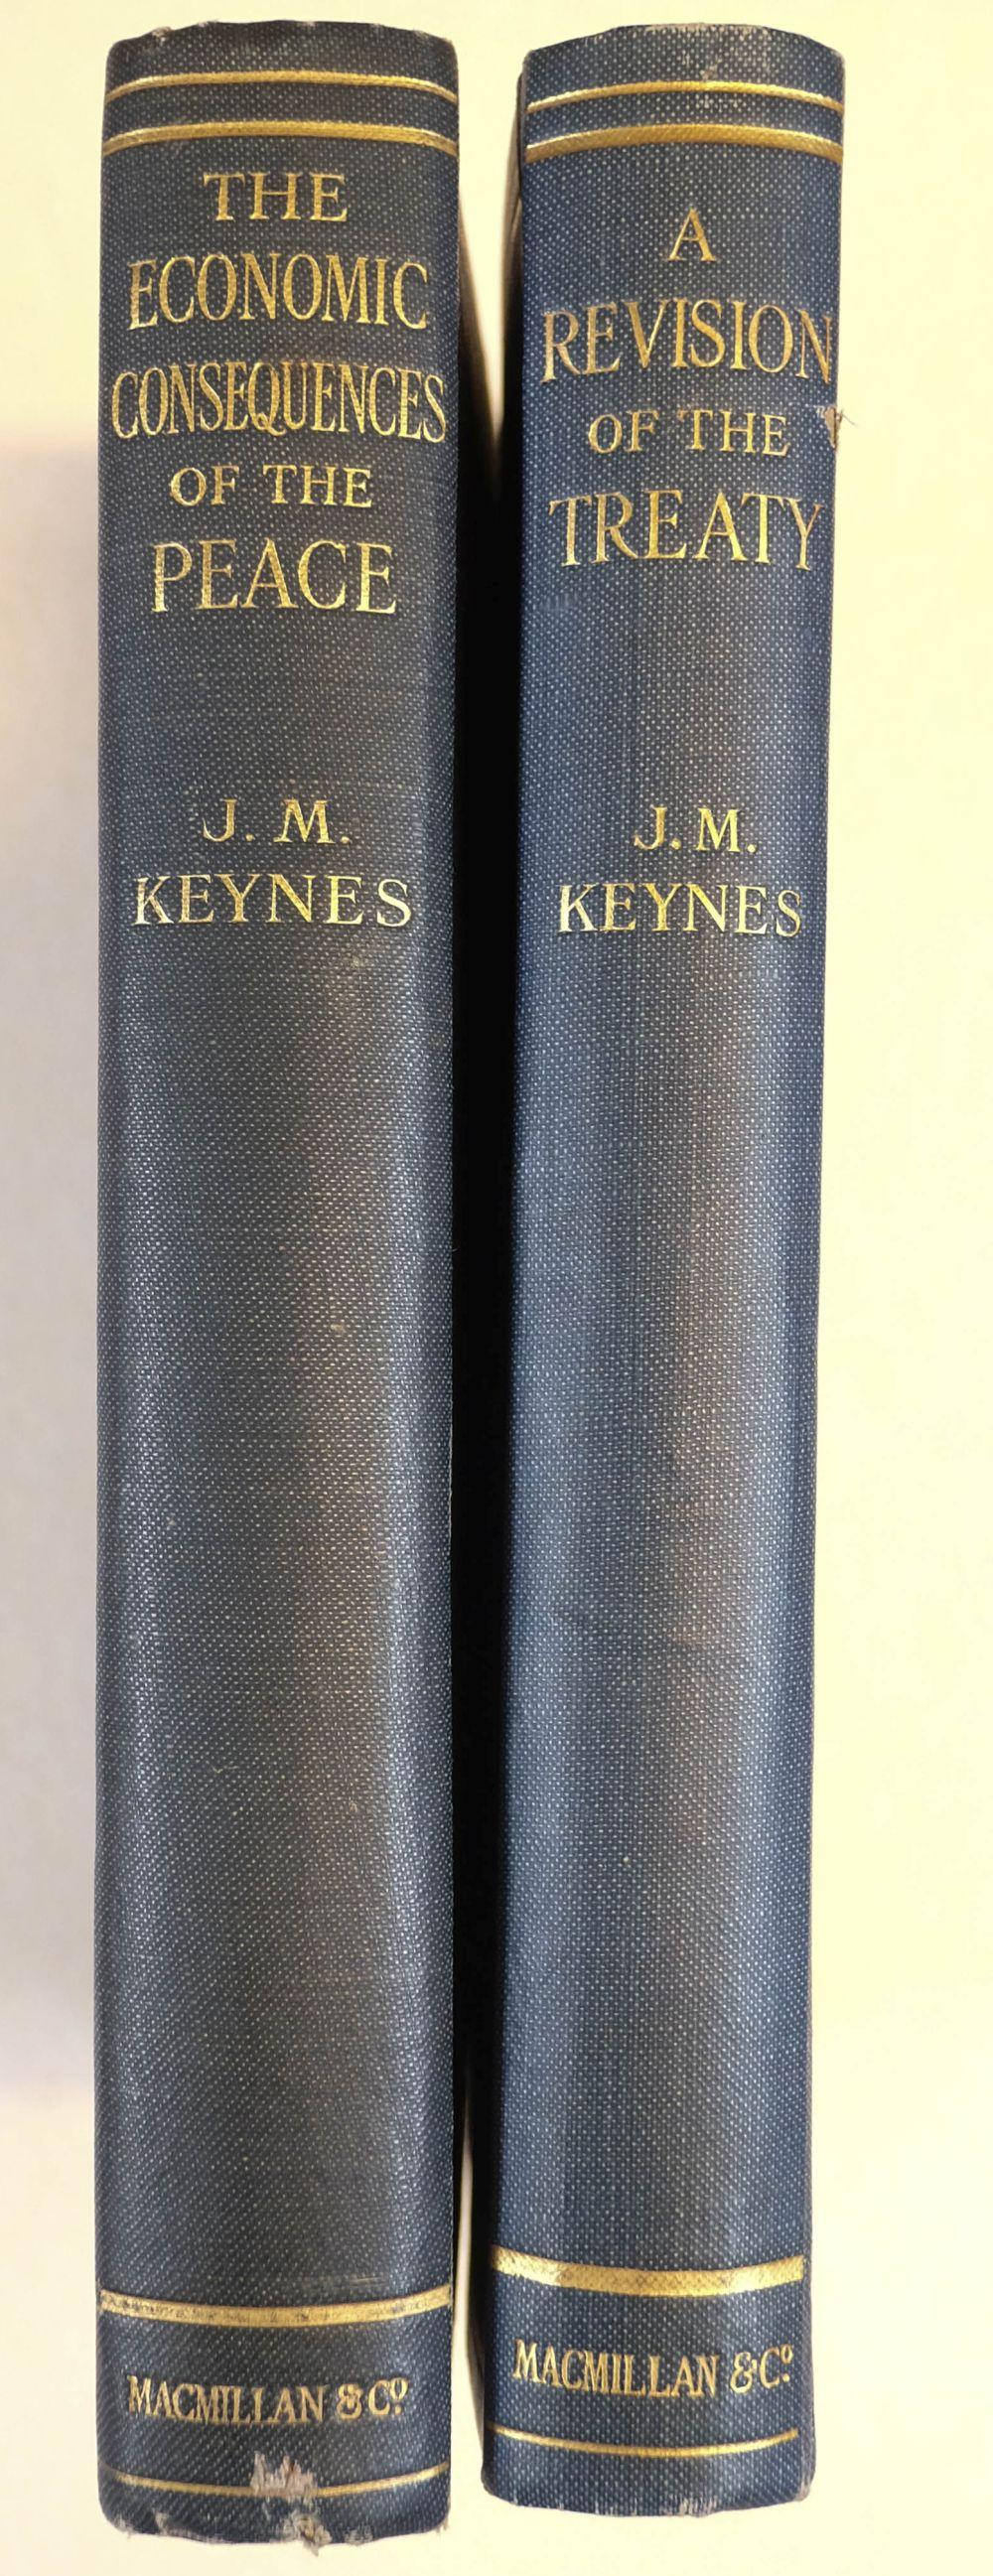 Keynes (John Maynard). The Economic Consequences of the Peace, 1st edition, 1919